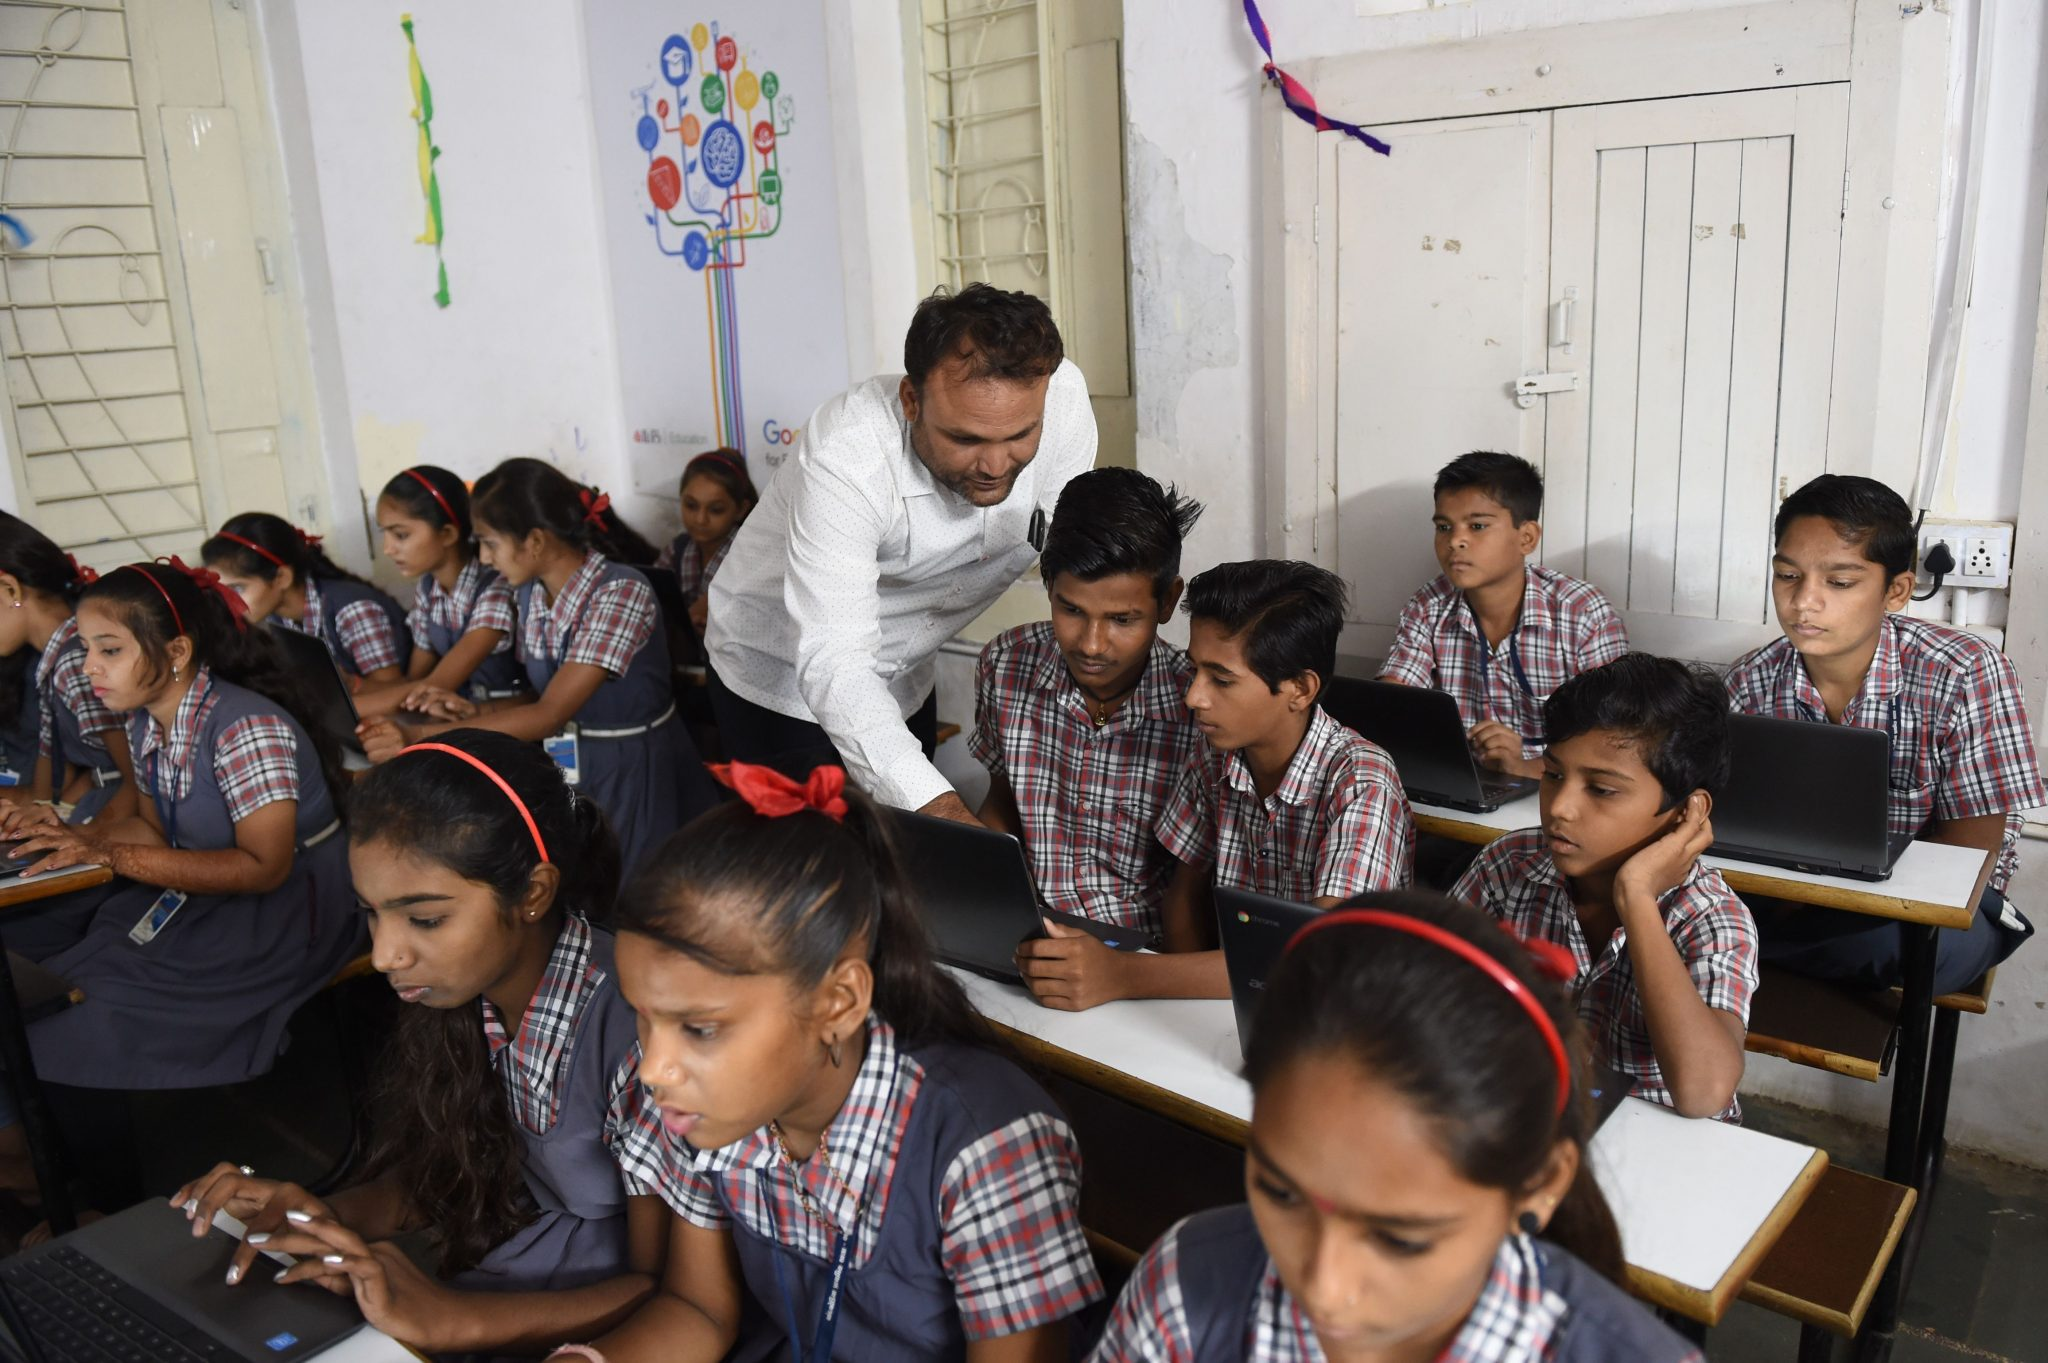 Gujarat students to answer roll call with Jai Hind, Jai Bharat (SAM PANTHAKY/AFP/Getty Images)